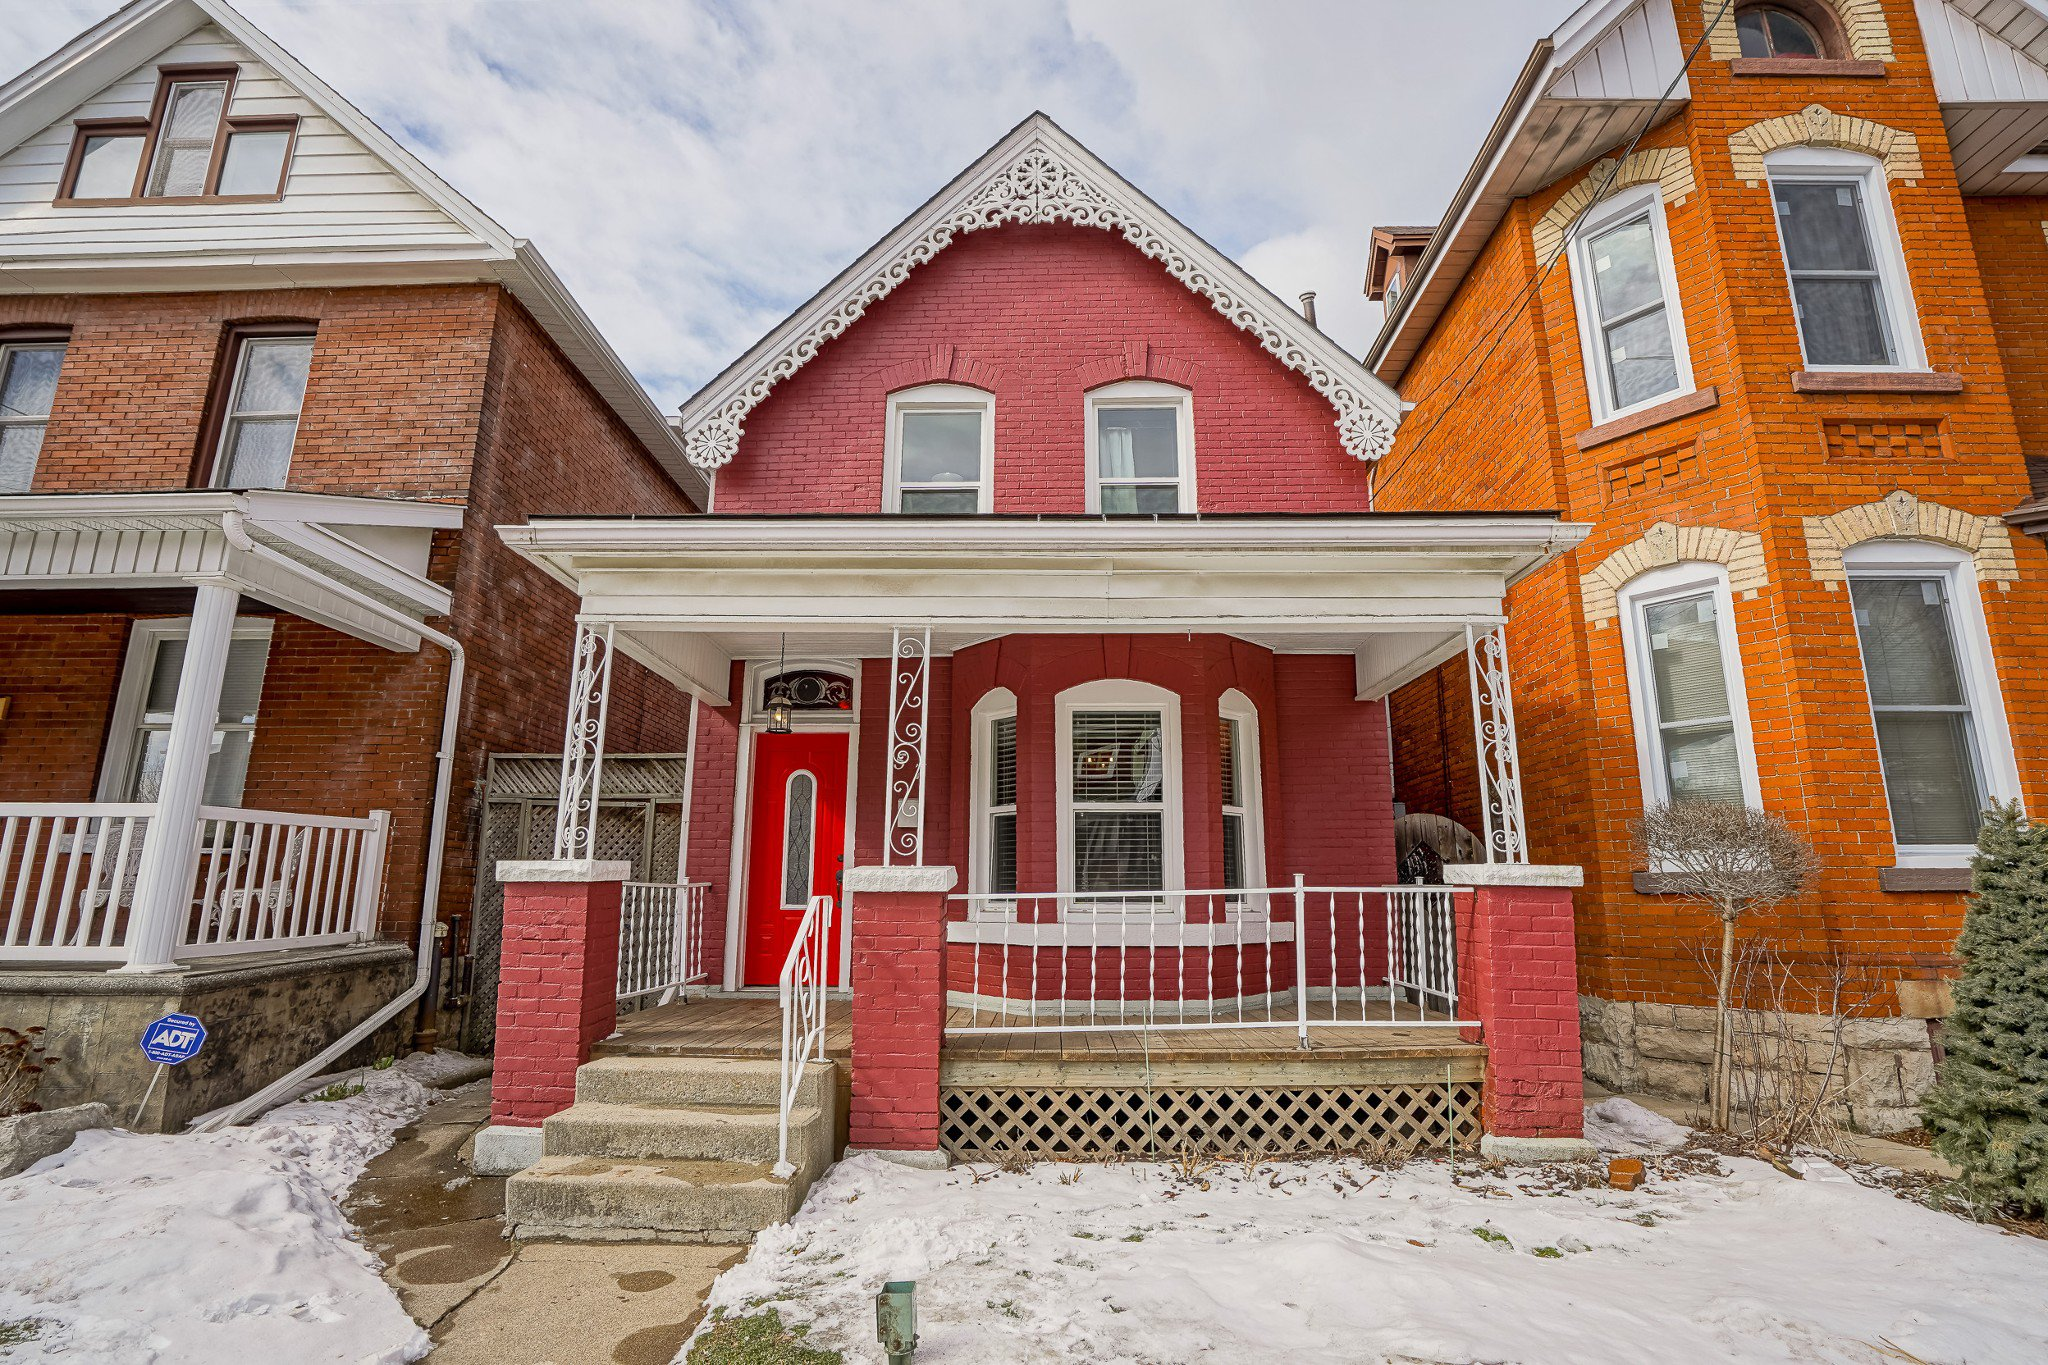 Main Photo: 57 Oak Avenue in Hamilton: House for sale : MLS®# H4047059